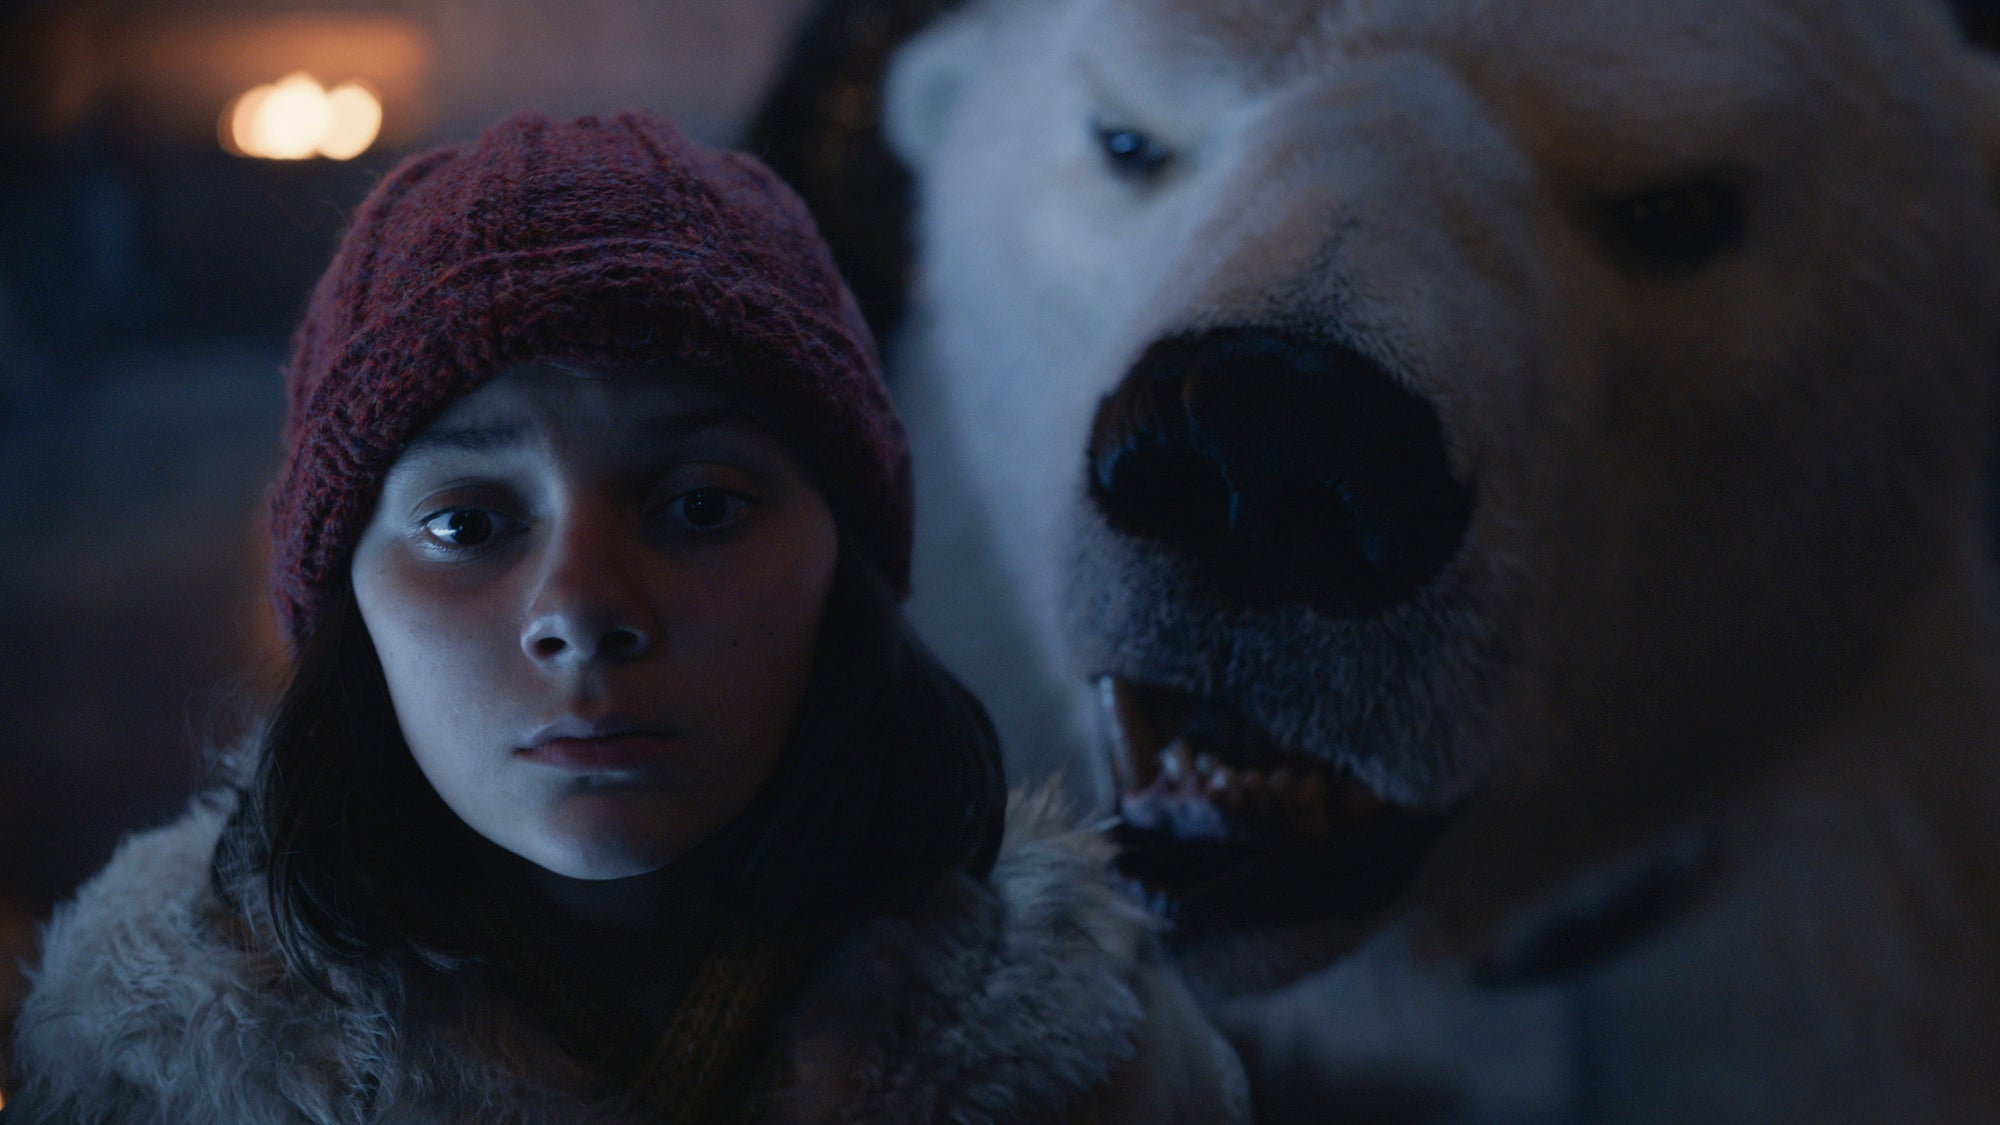 His Dark Materials Turns Things Around With An Intense (But Nonviolent) Bear Fight